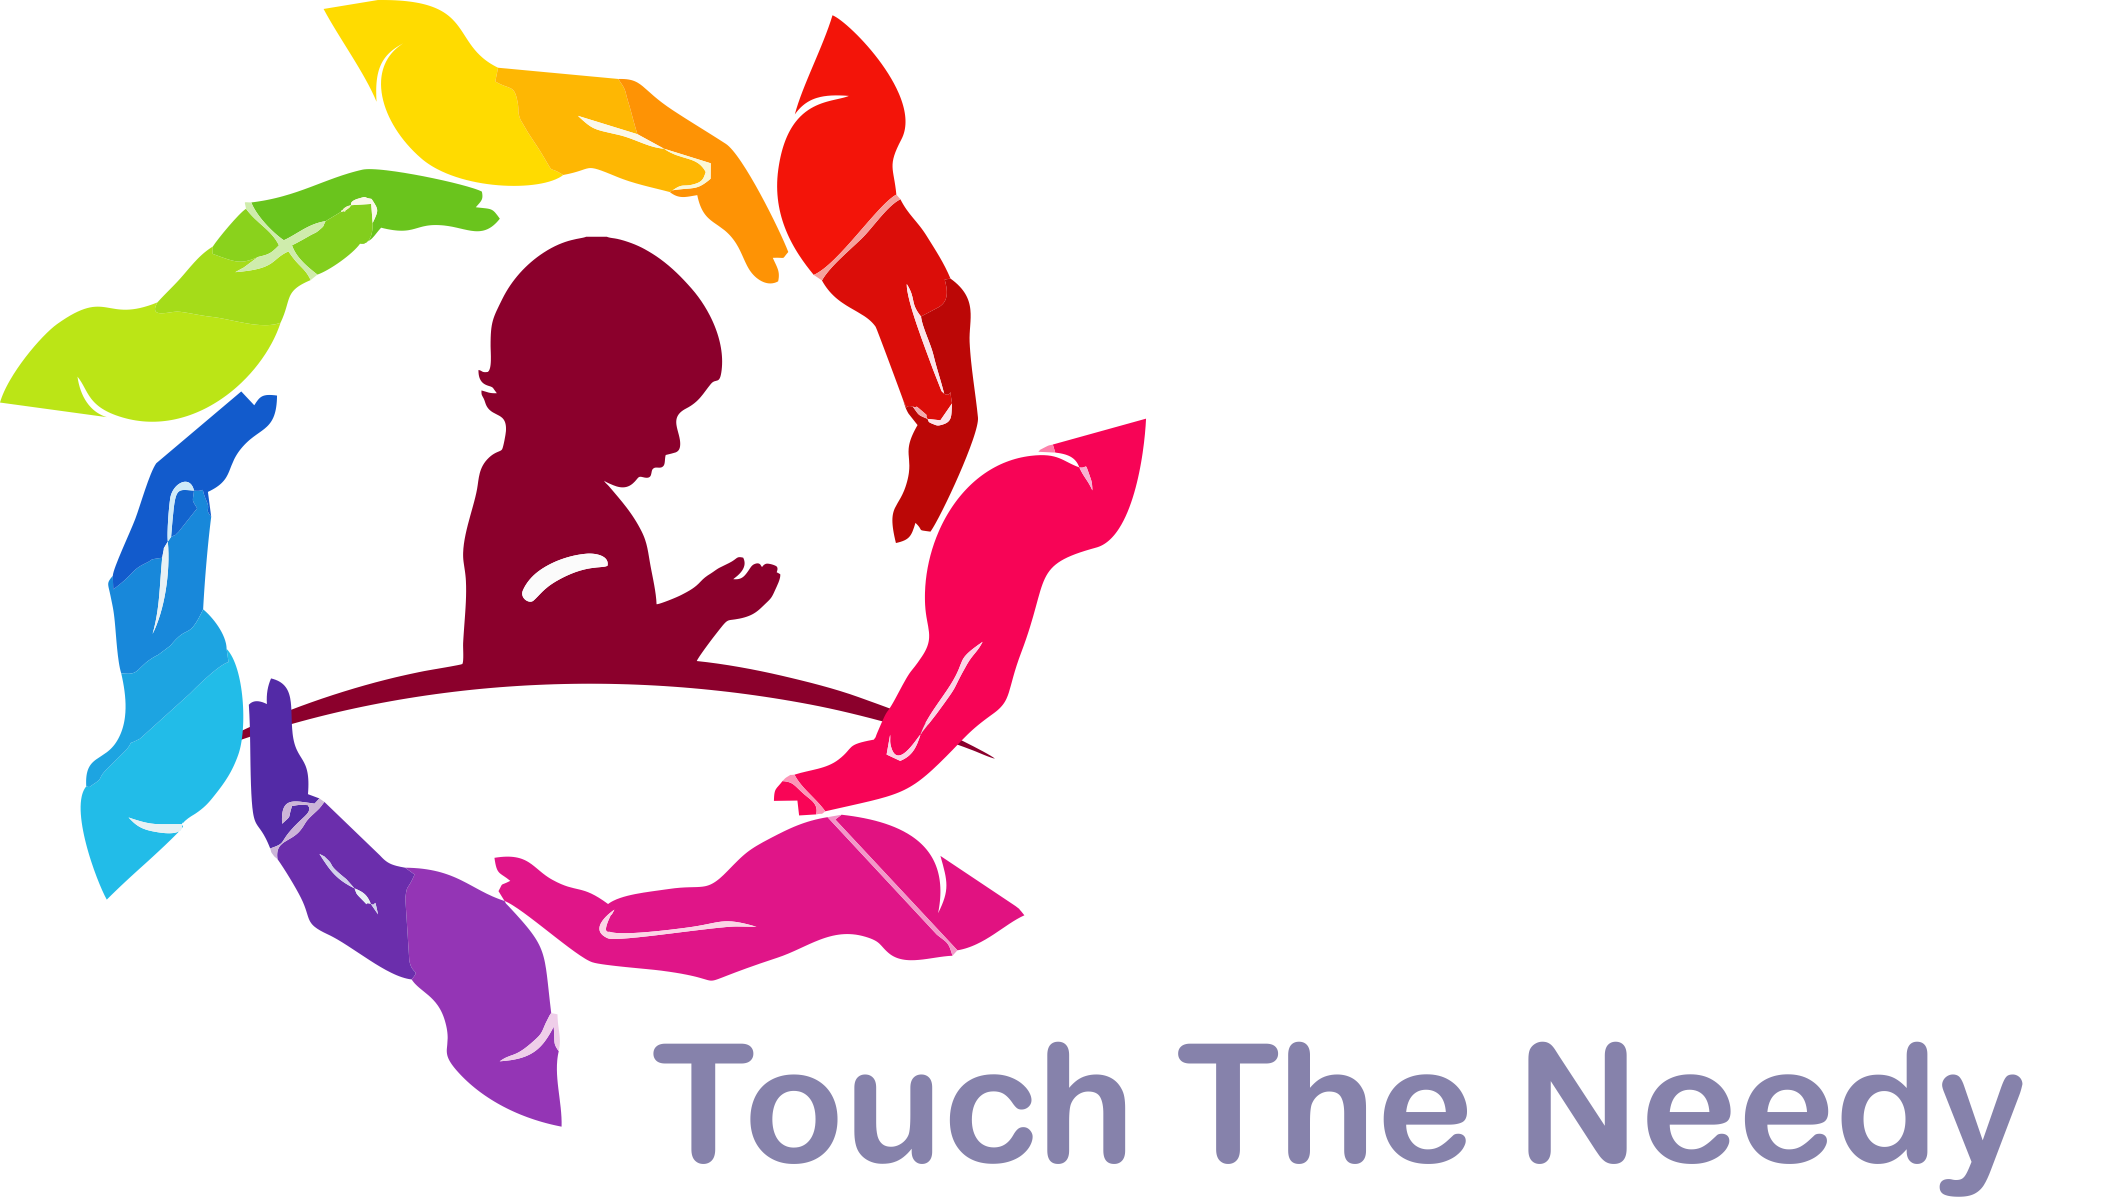 Donation clipart needy person. Donate touch the